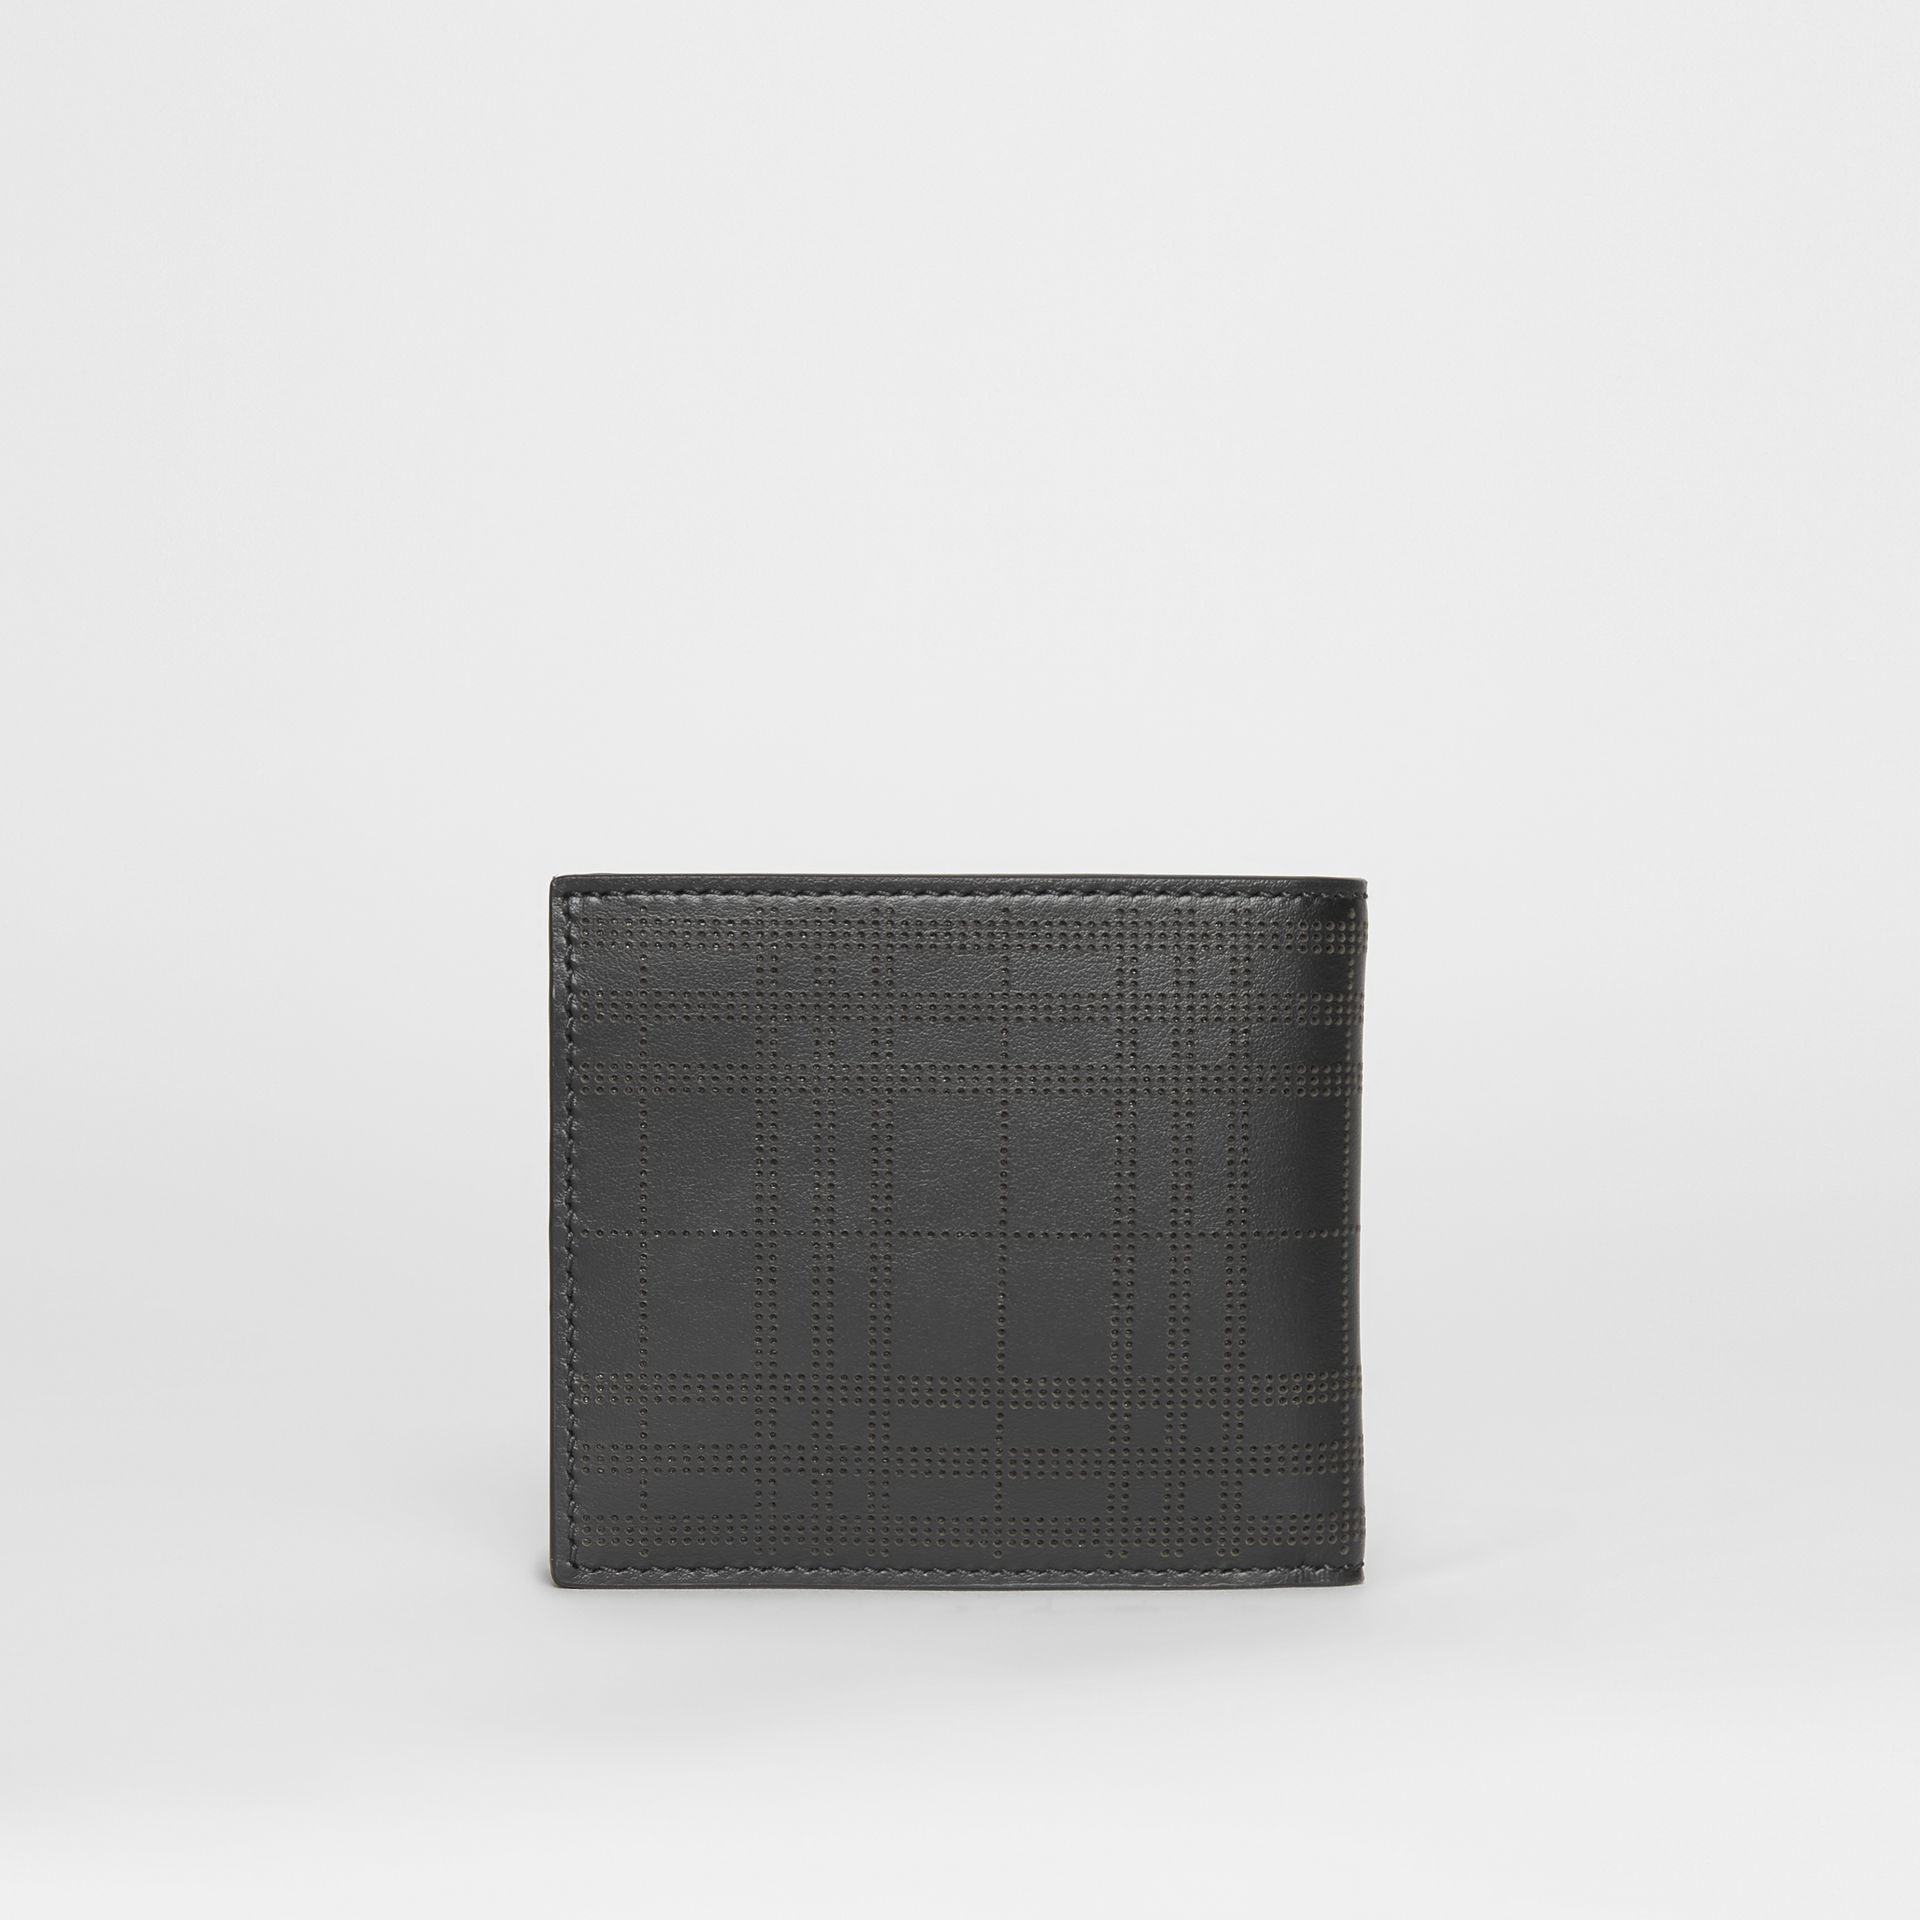 Perforated Check Leather International Bifold Wallet in Black - Men | Burberry Australia - gallery image 4